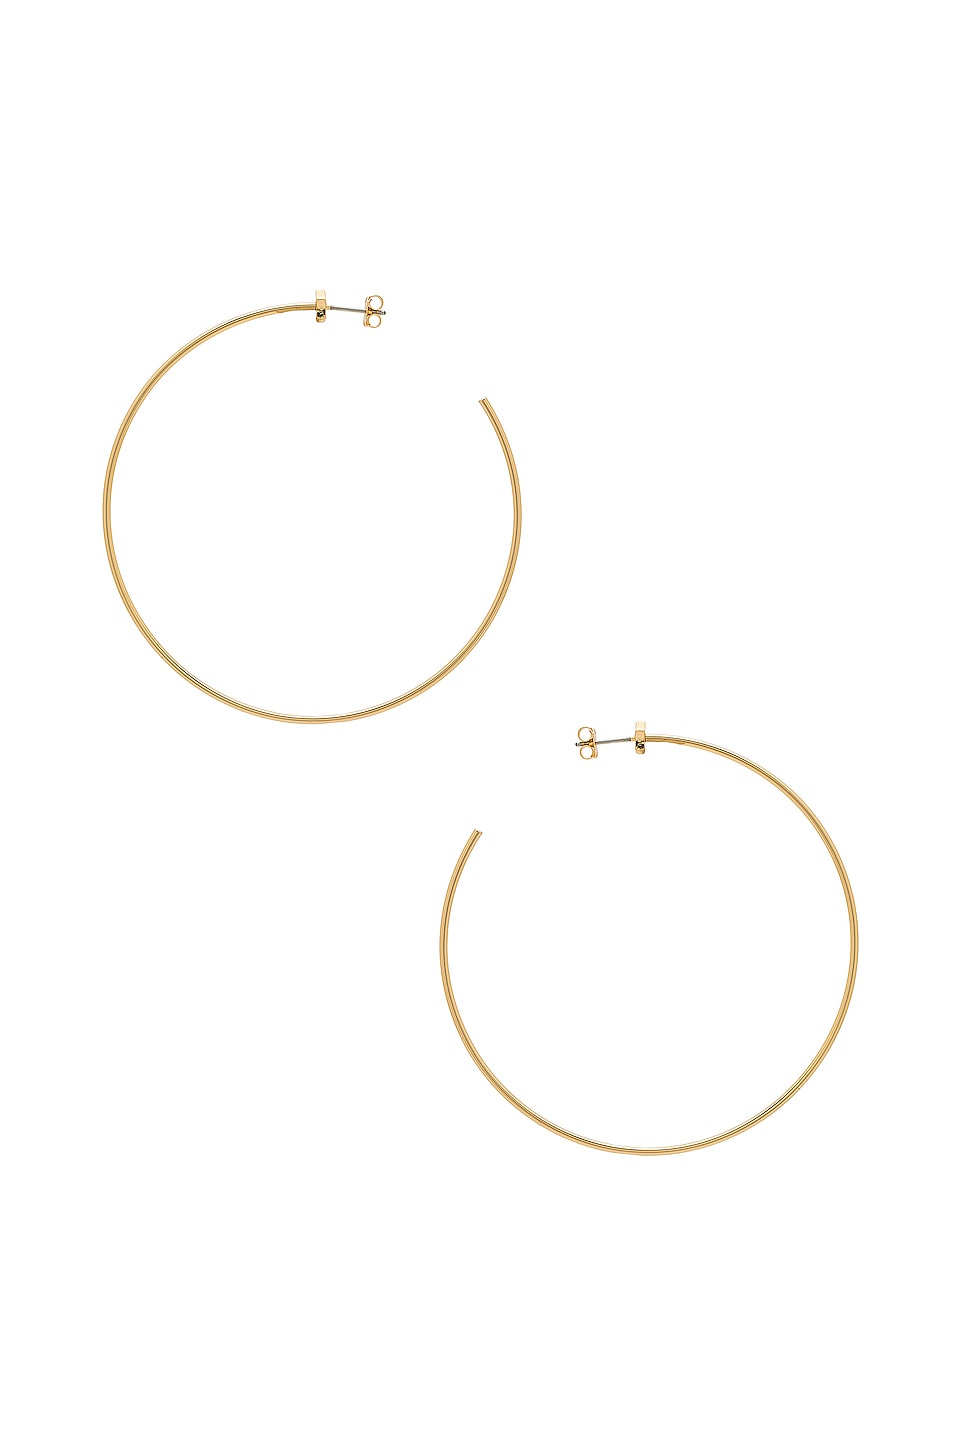 Starlet Hoops by Jenny Bird, available on revolve.com for $70 Bella Hadid Jewellery Exact Product